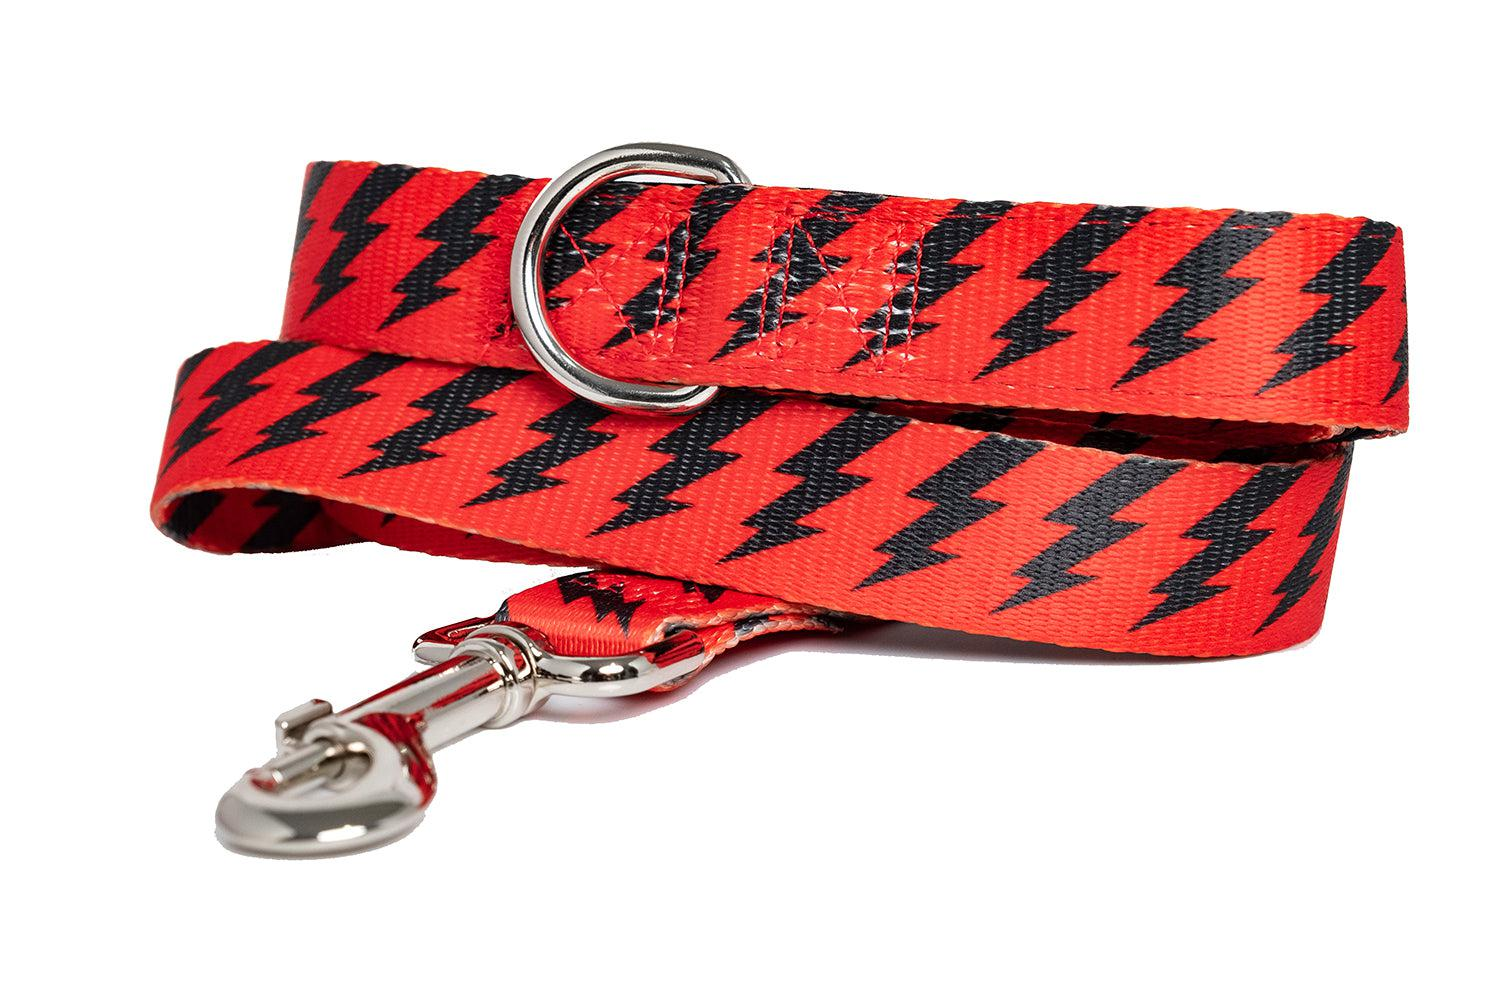 Red & Black Bolt Dog Leash (Neoprene)-Dizzy Dog Collars-Dizzy Dog Collars